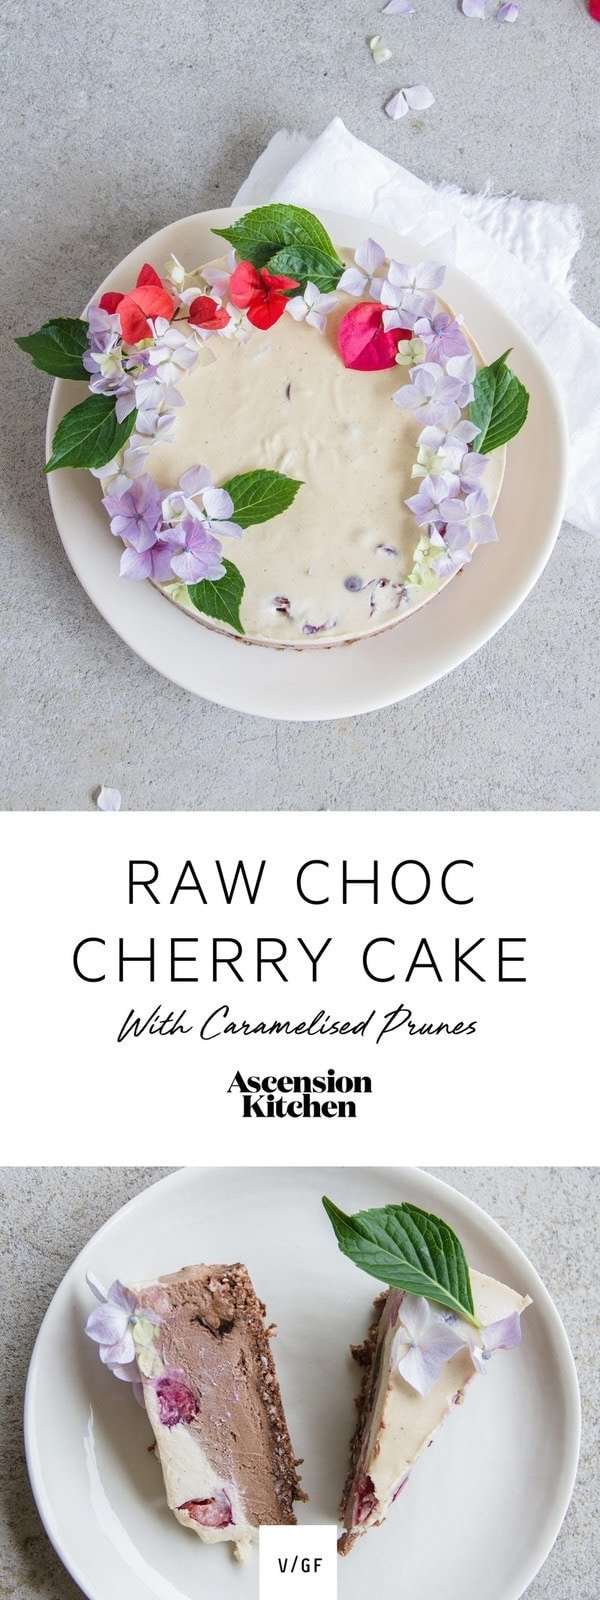 Raw Chocolate Cherry Cake with Caramelised Prunes - gluten free and vegan